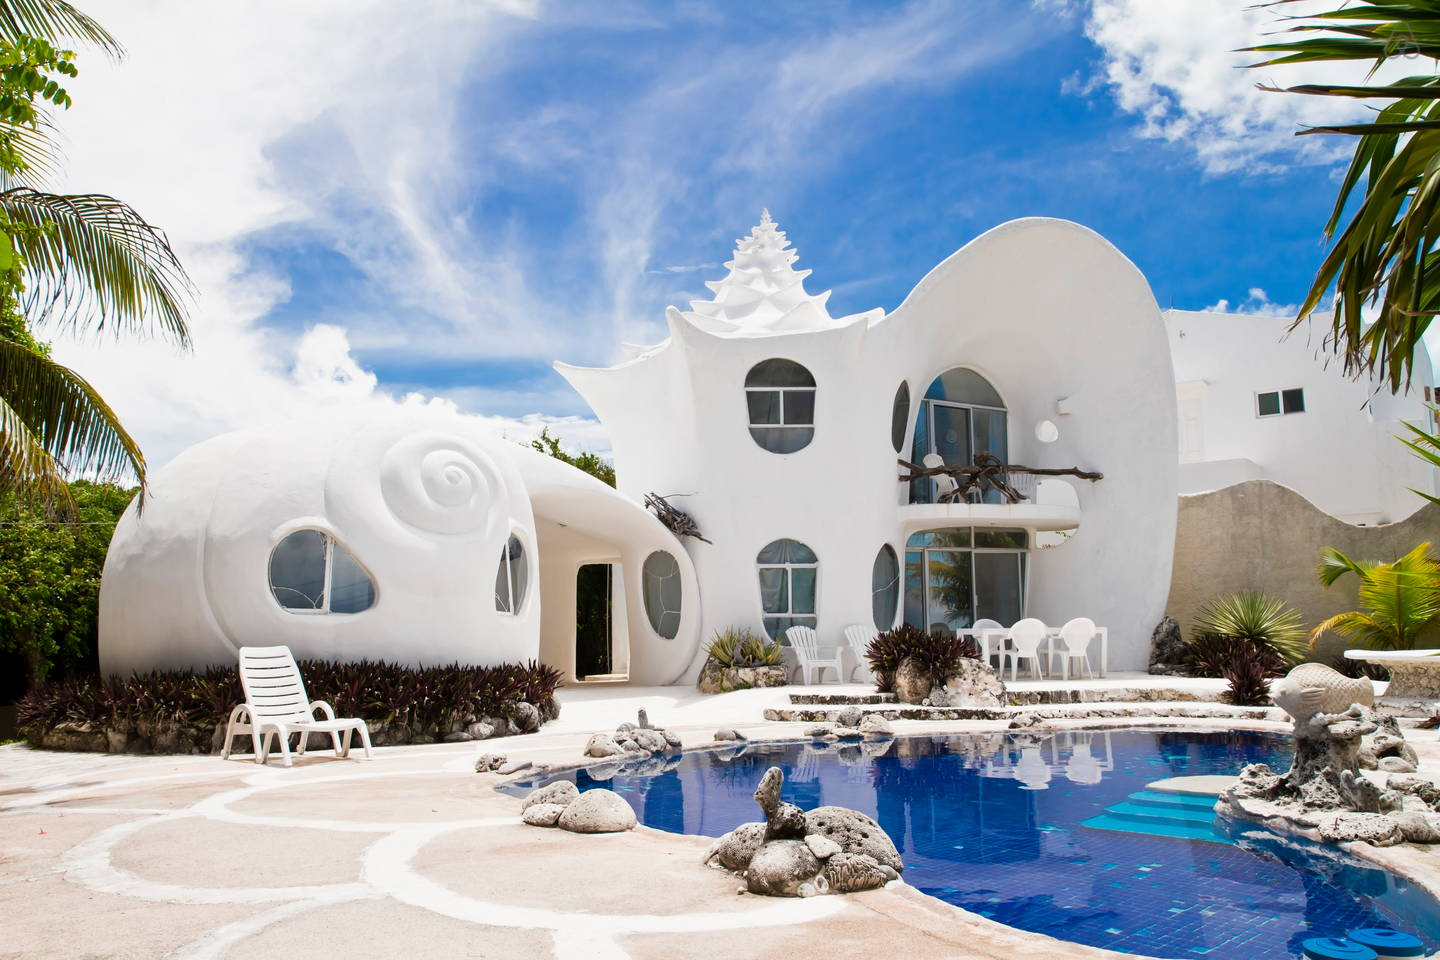 Quirky Airbnbs Seashell House